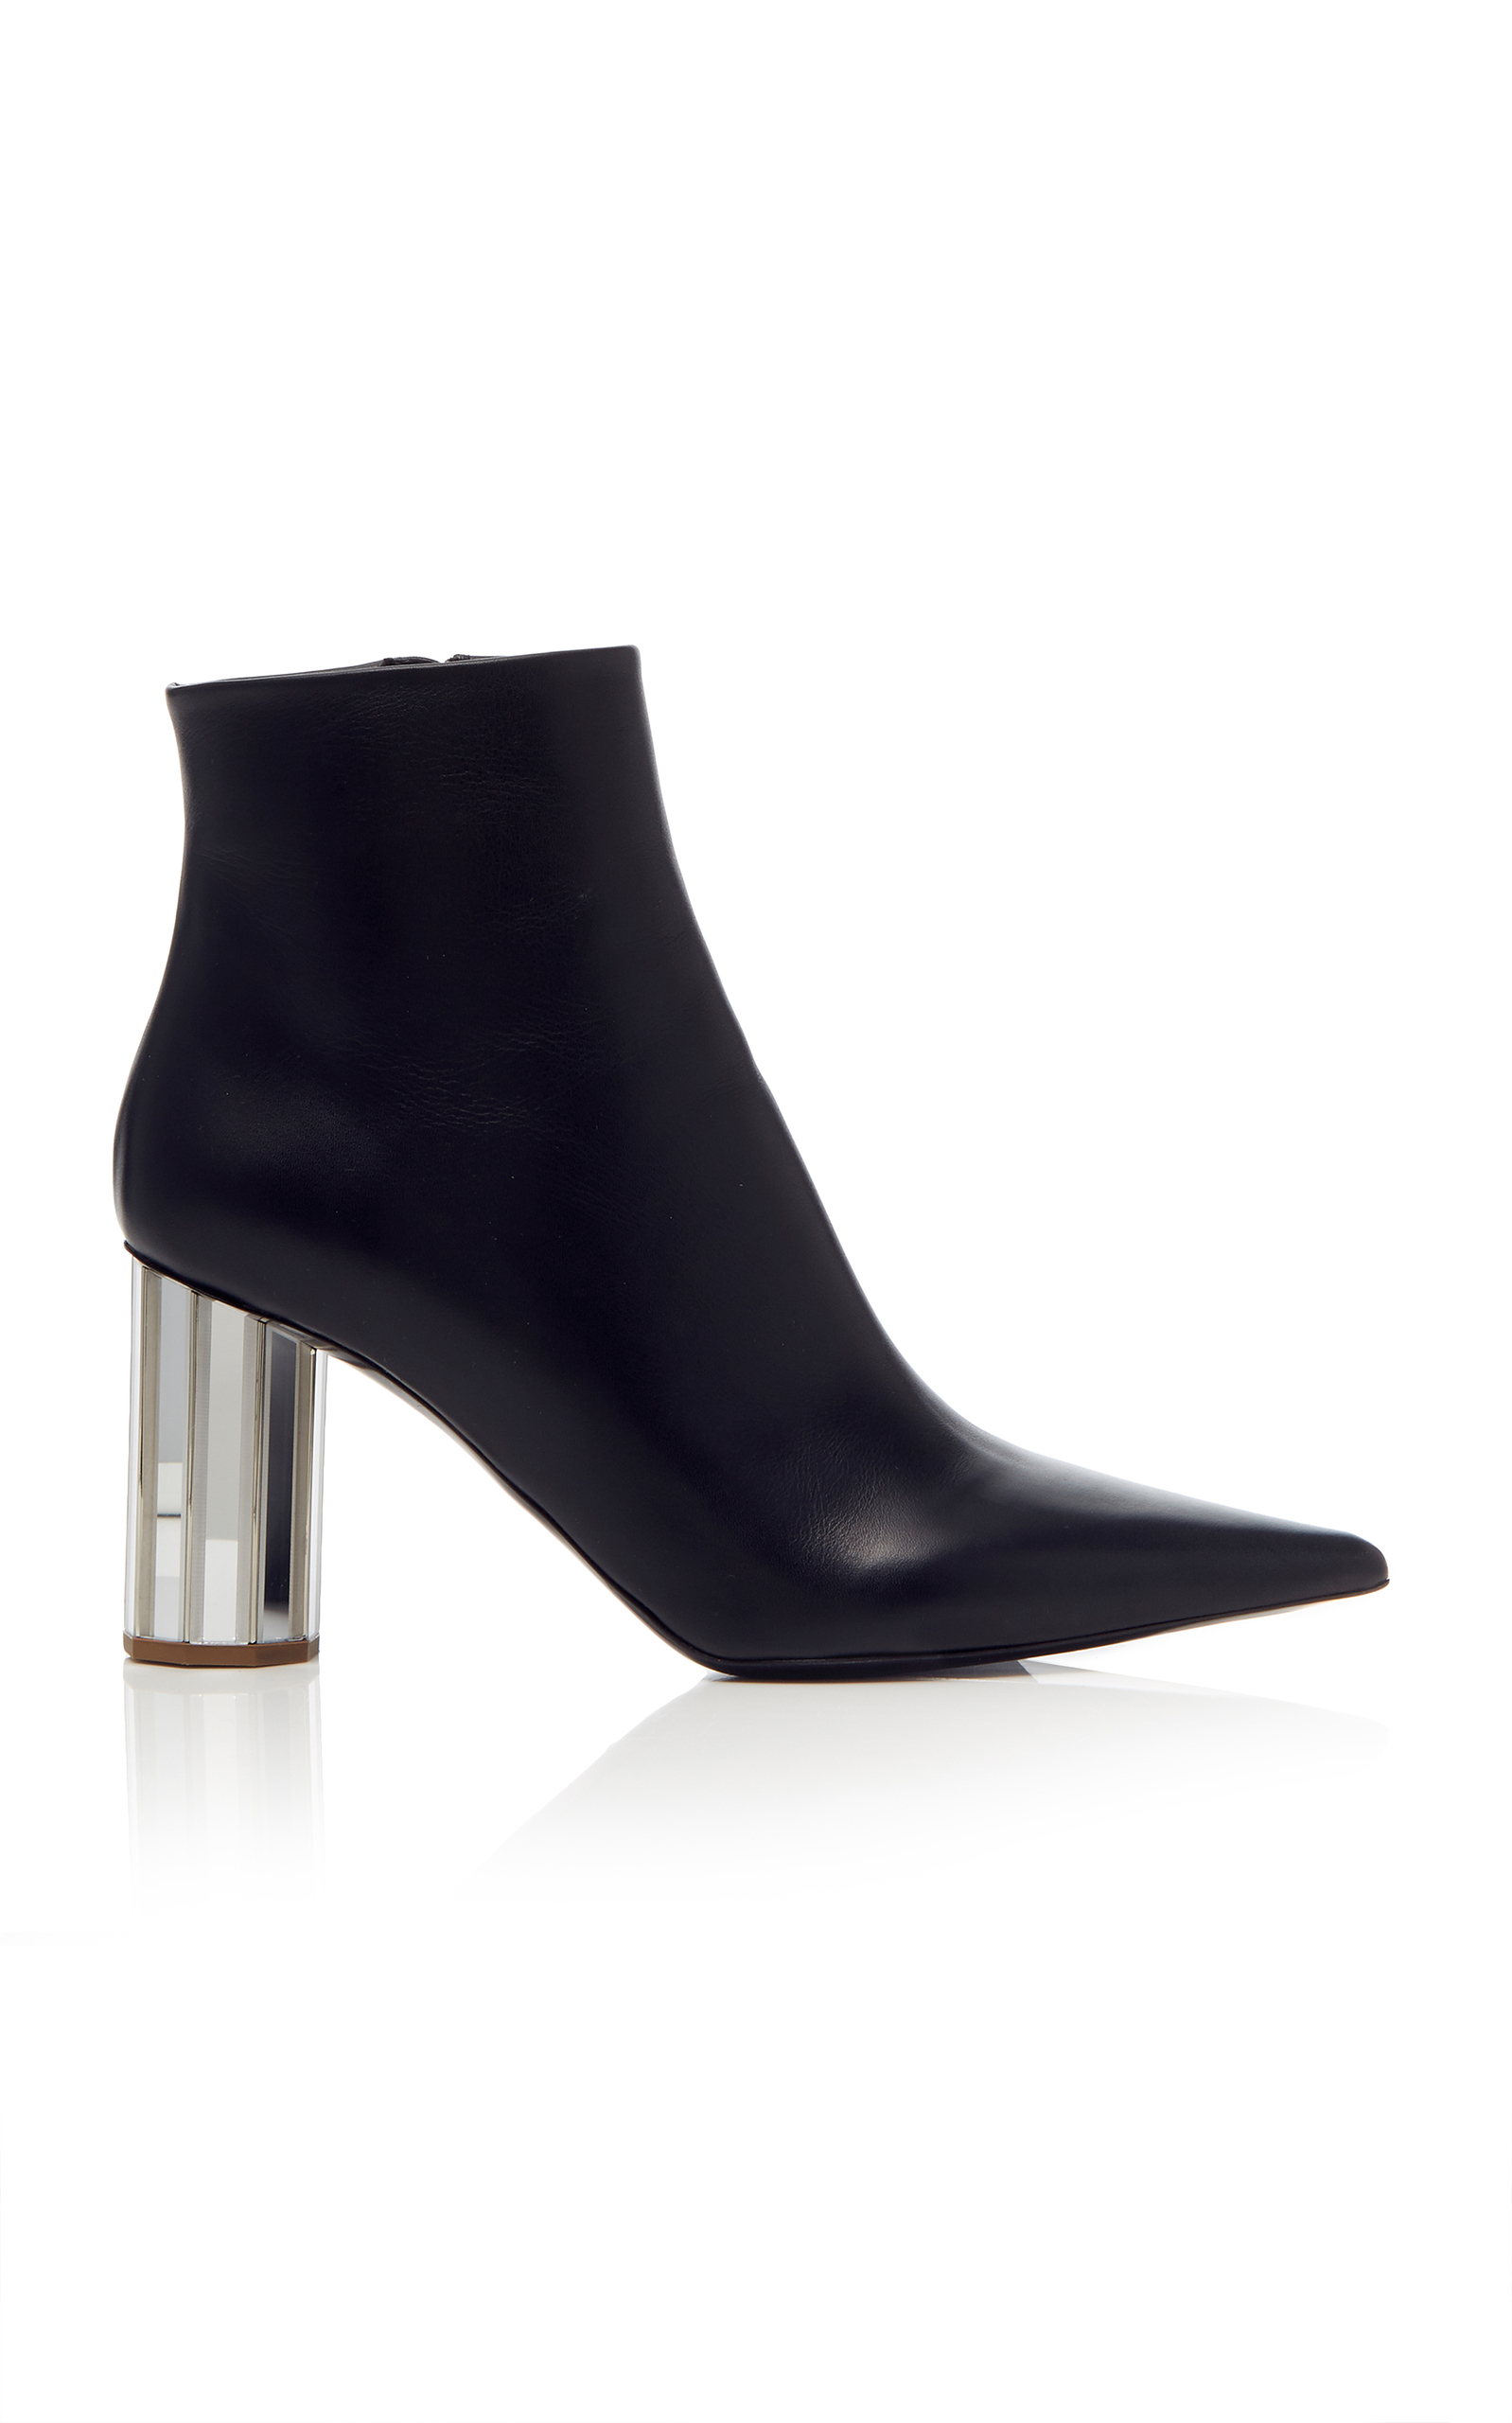 Mirrored-Heel Leather Ankle Boots - Black Size 7